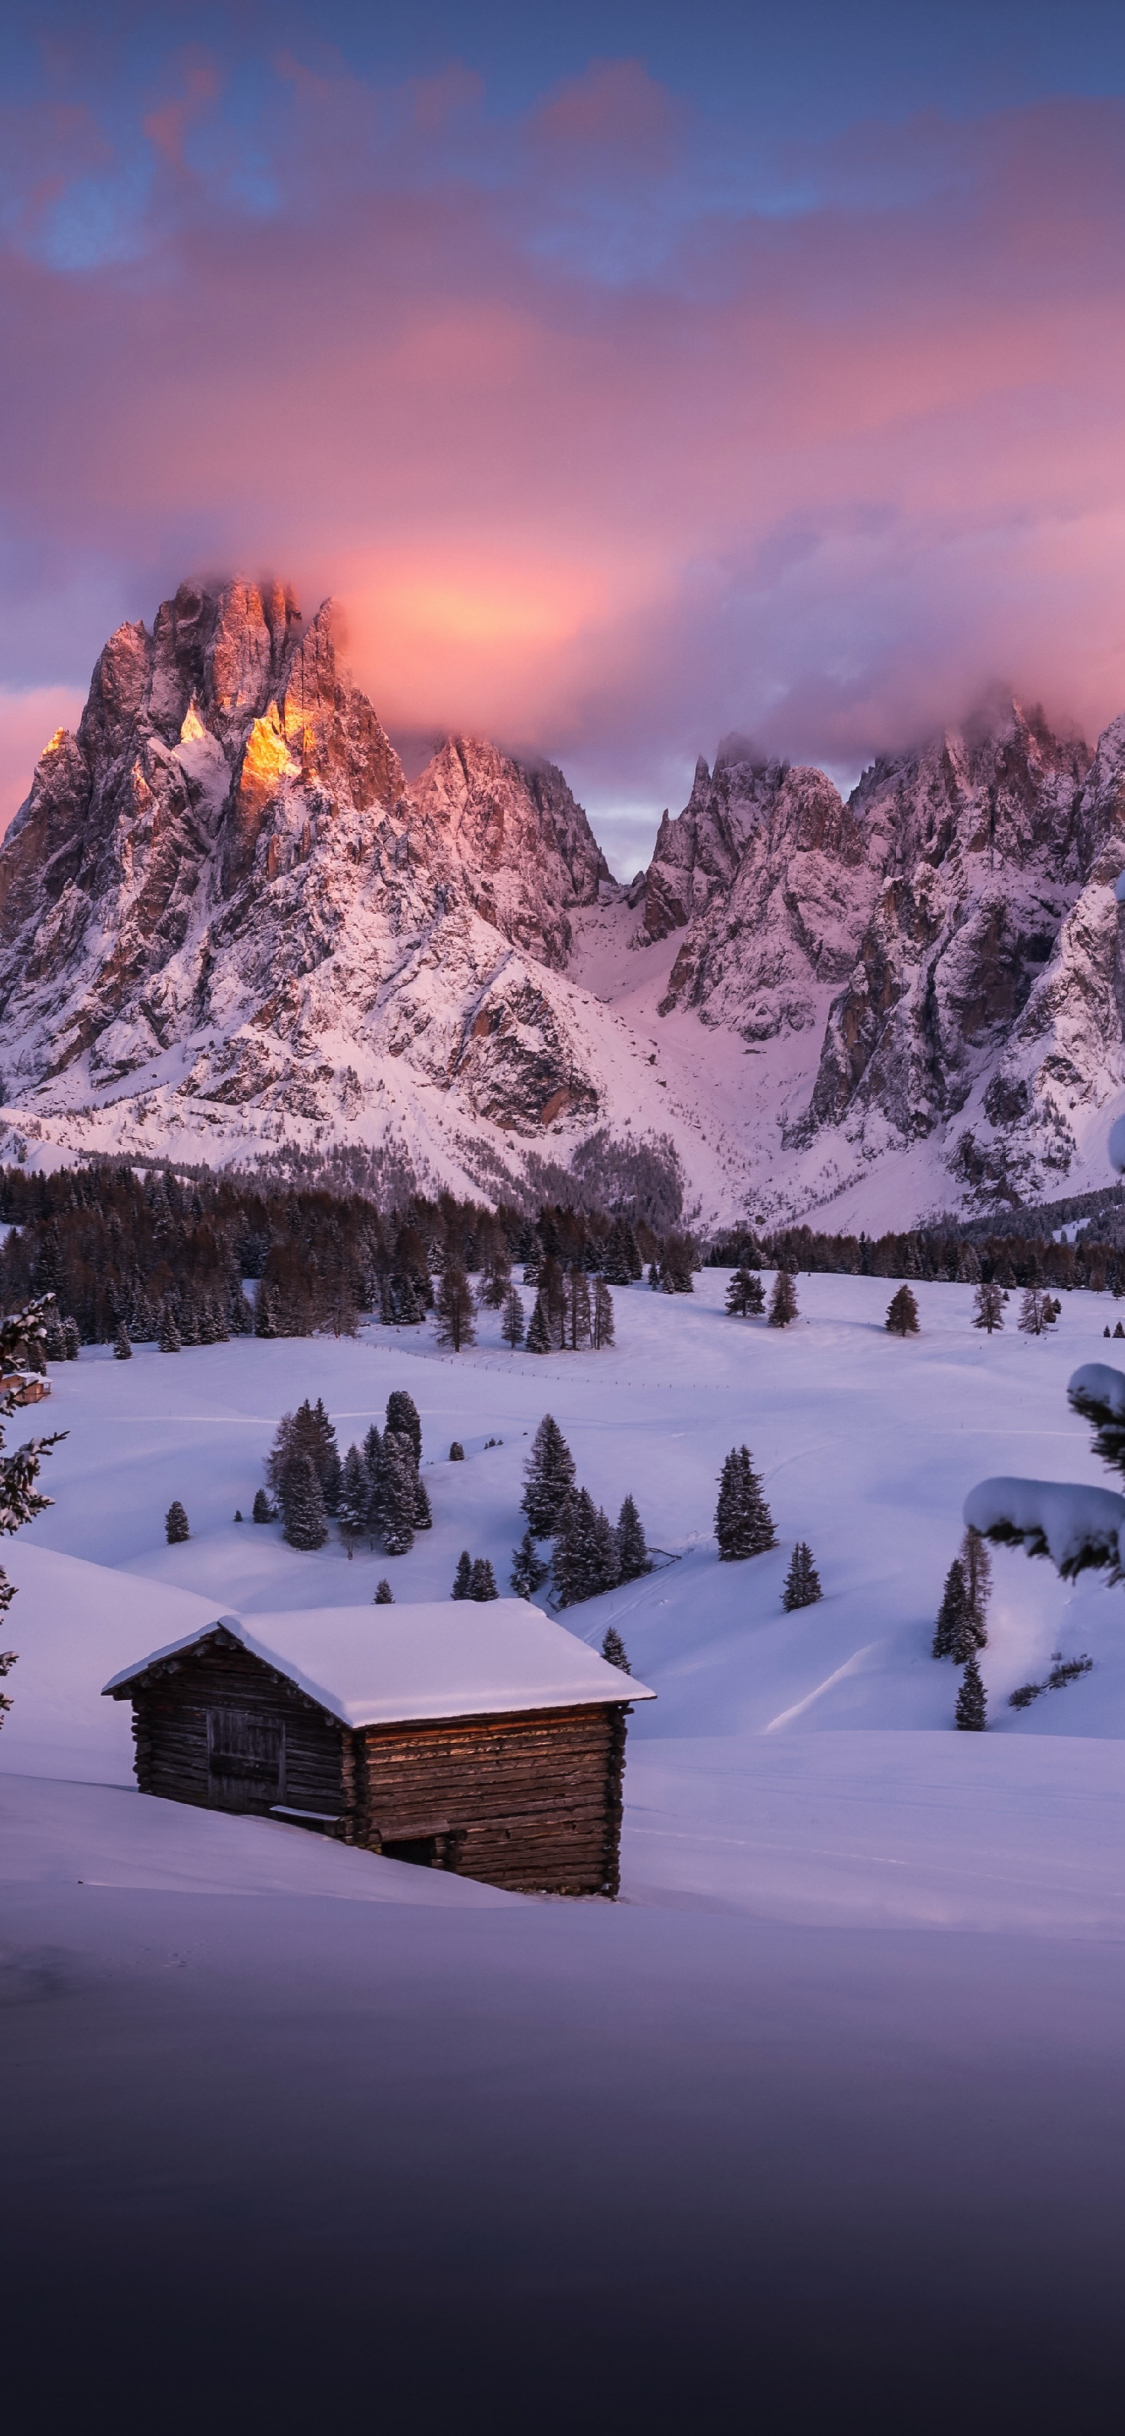 Download 1125x2436 Wallpaper Winter Cabin Landscape Nature Dawn Mountains Iphone X 1125x2436 Hd Image Background 3531